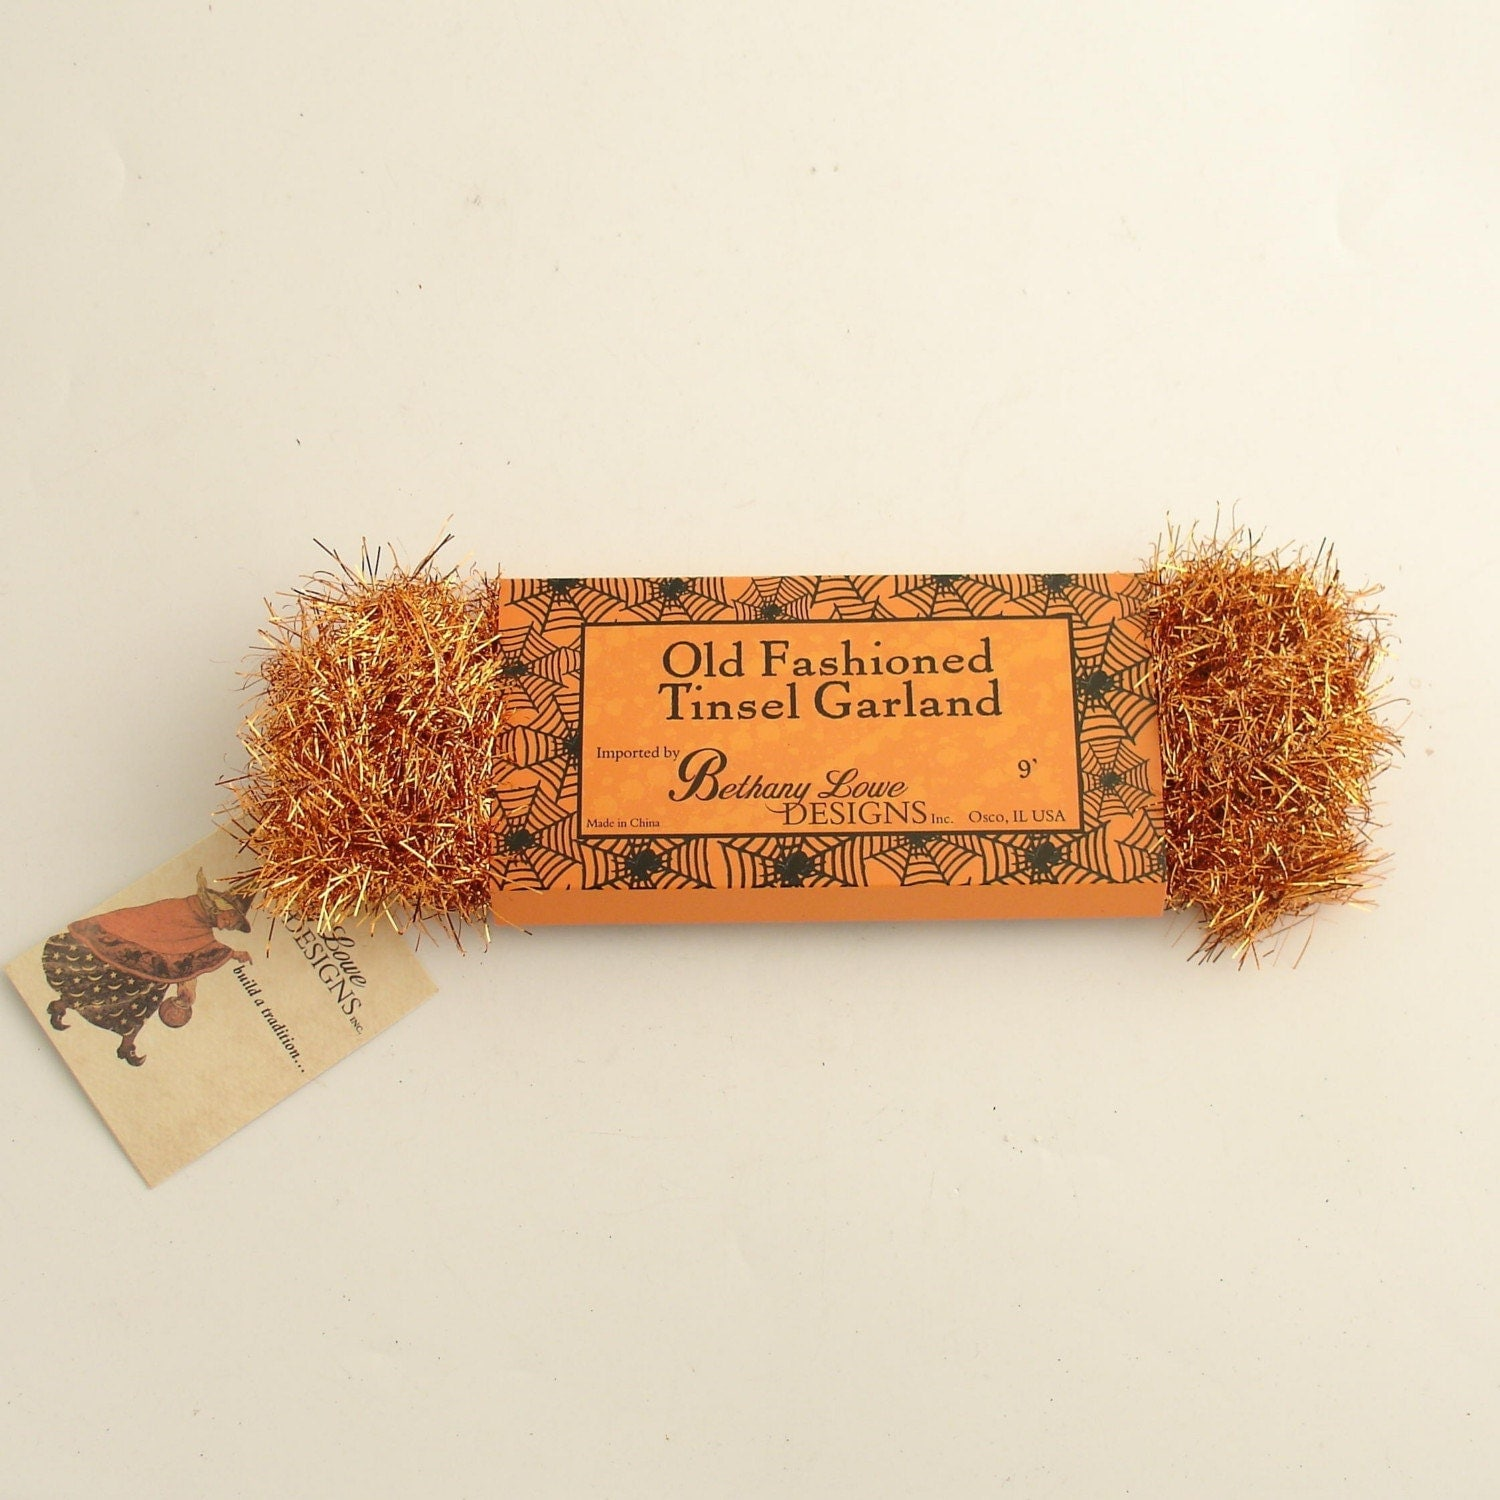 Orange tinsel garland bethany lowe vintage style by efinegifts